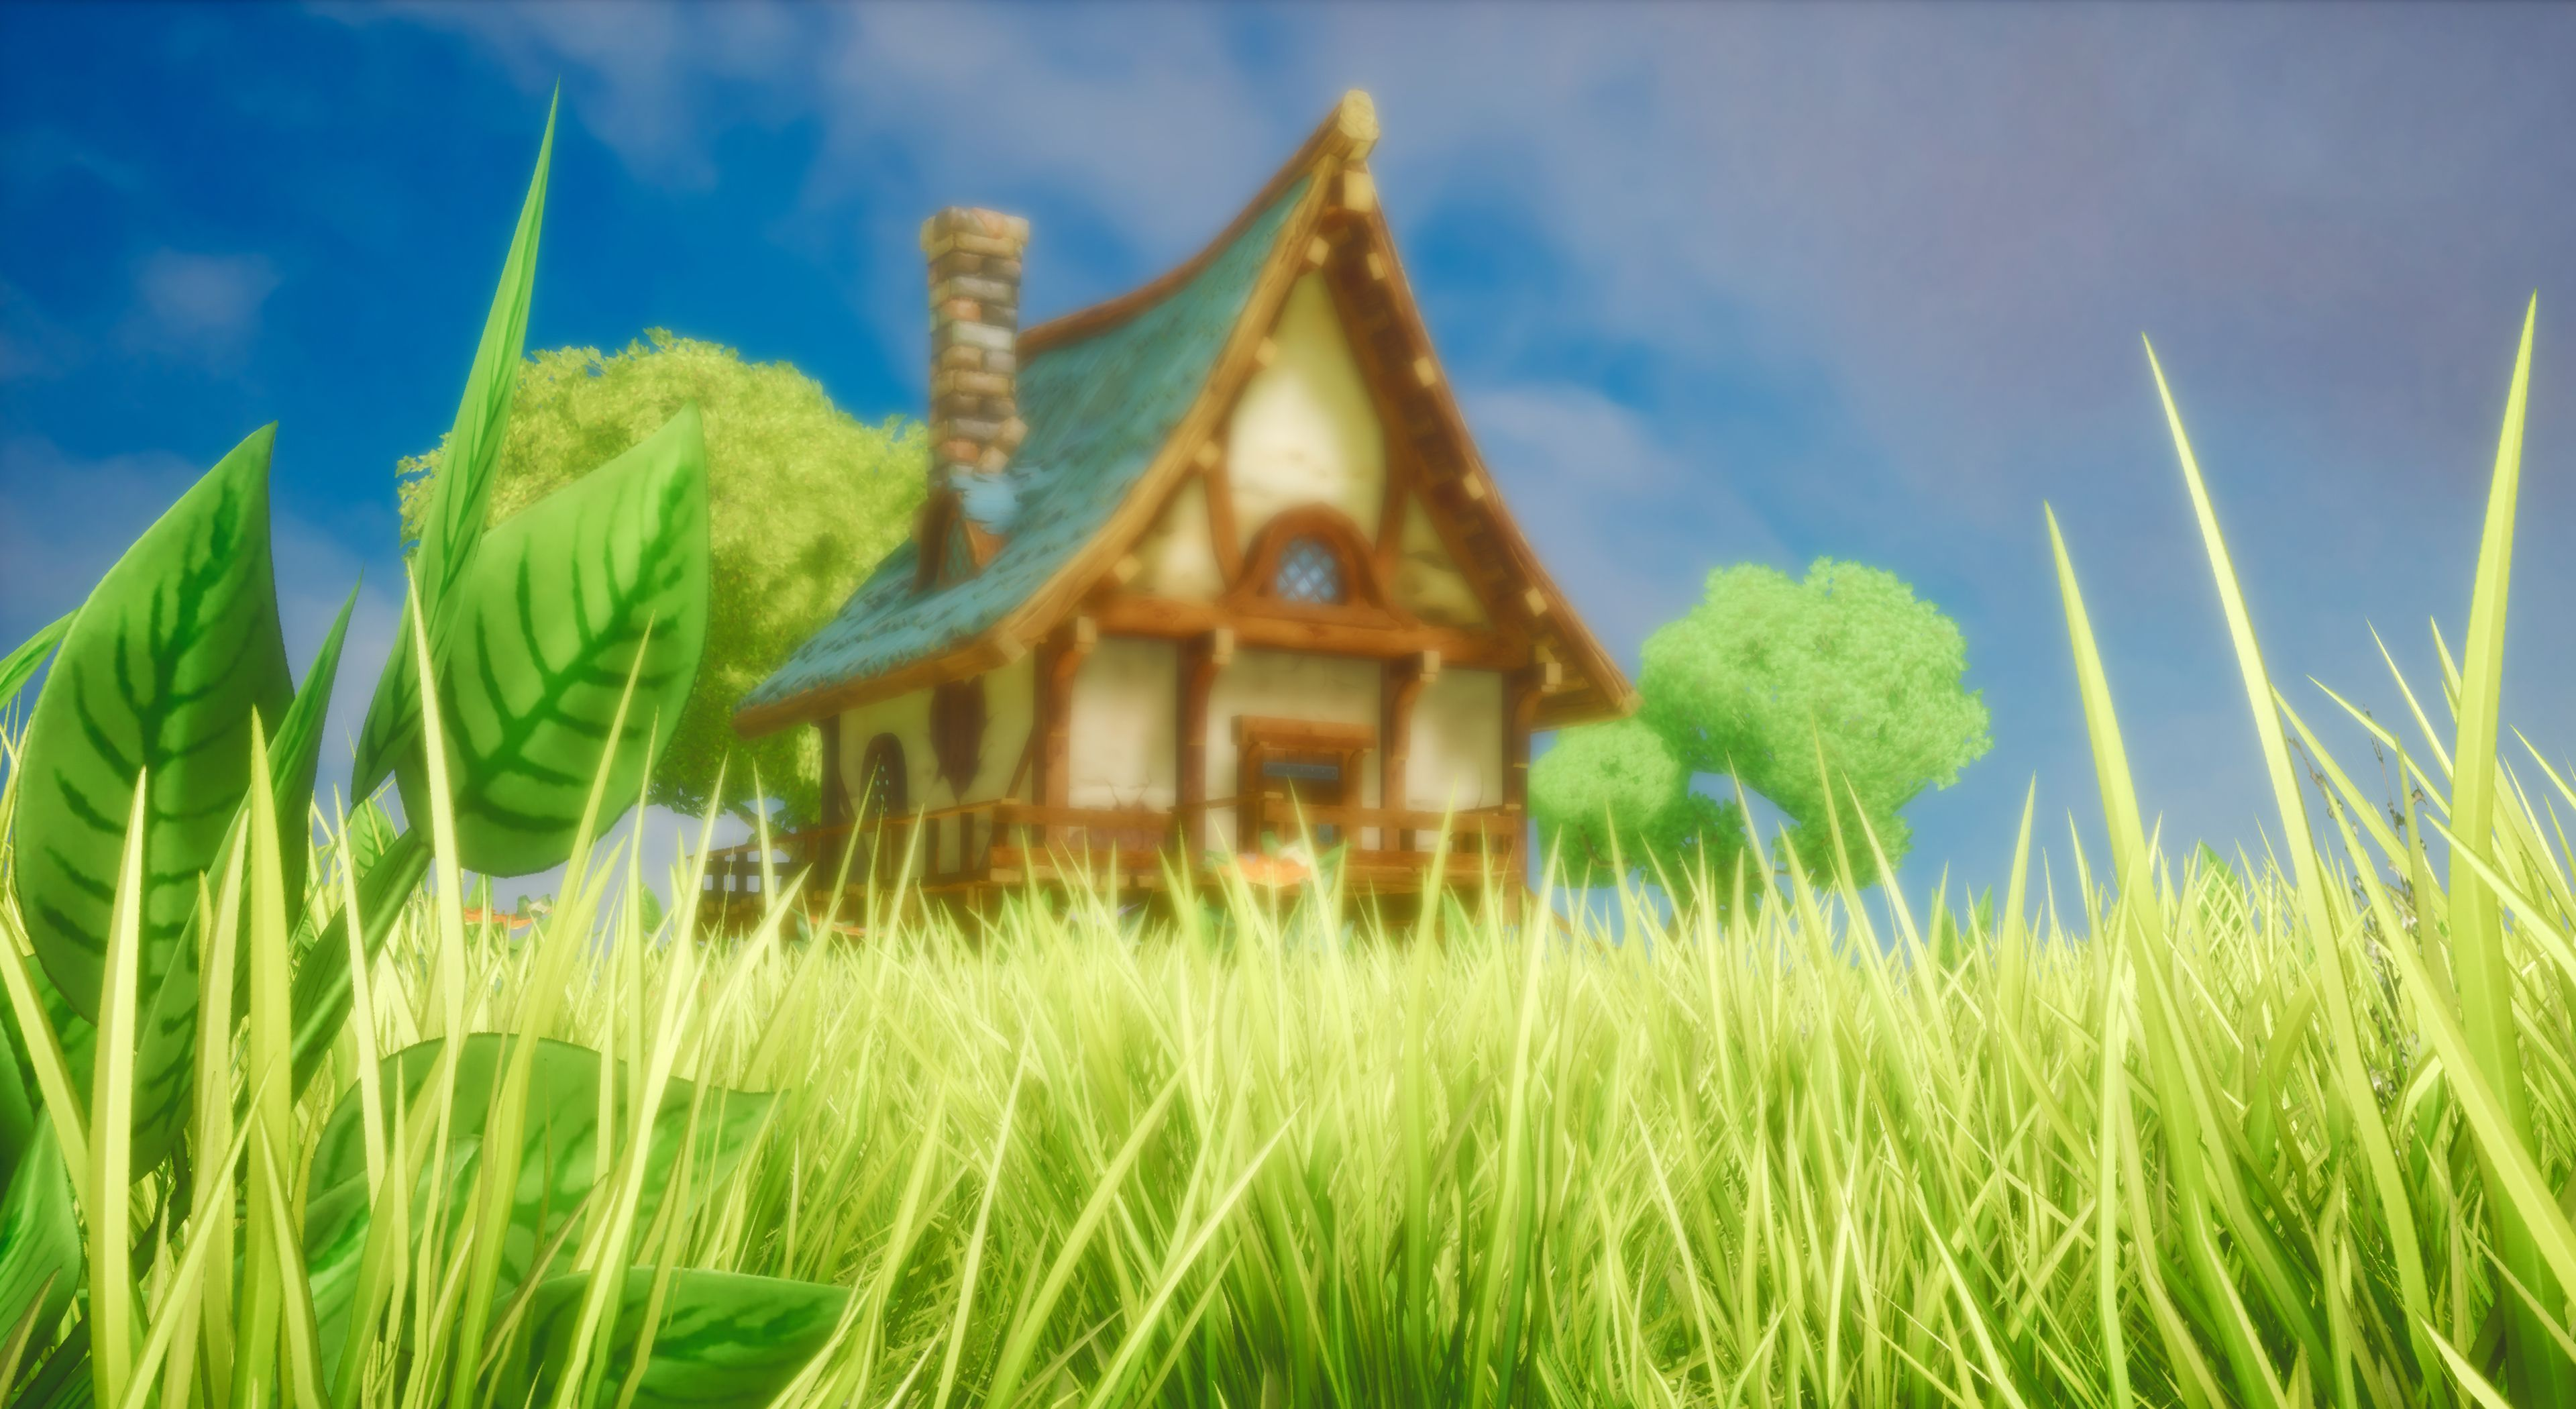 Unreal Engine 4 Stylized Rendering Workflow | Neat Game